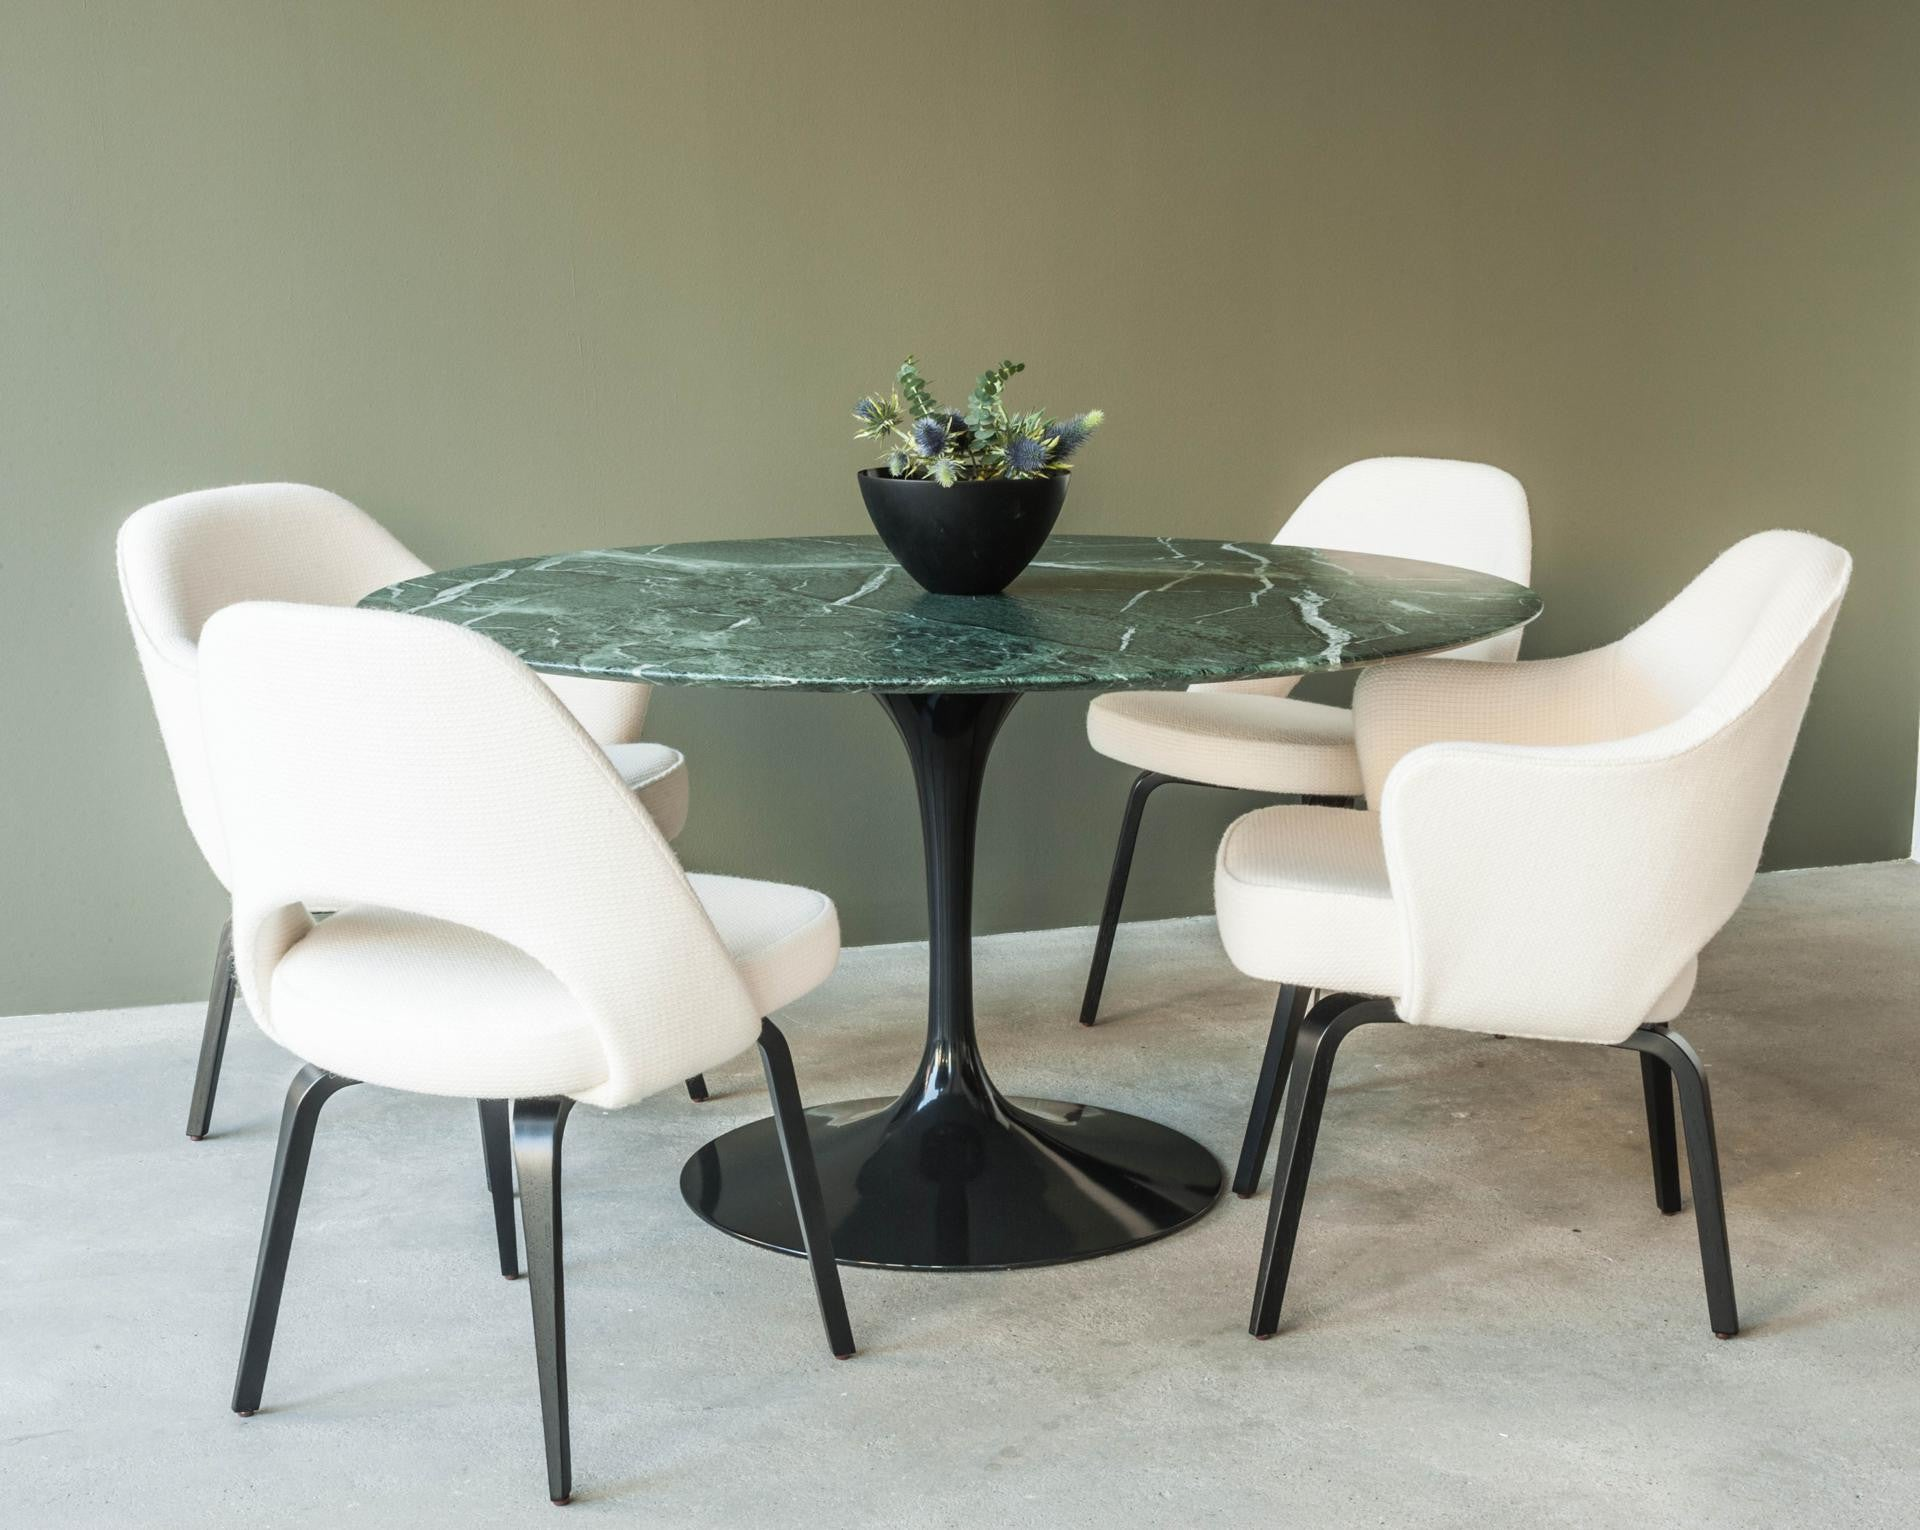 Saarinen Tulip Table, Verde Alpi Marble Top